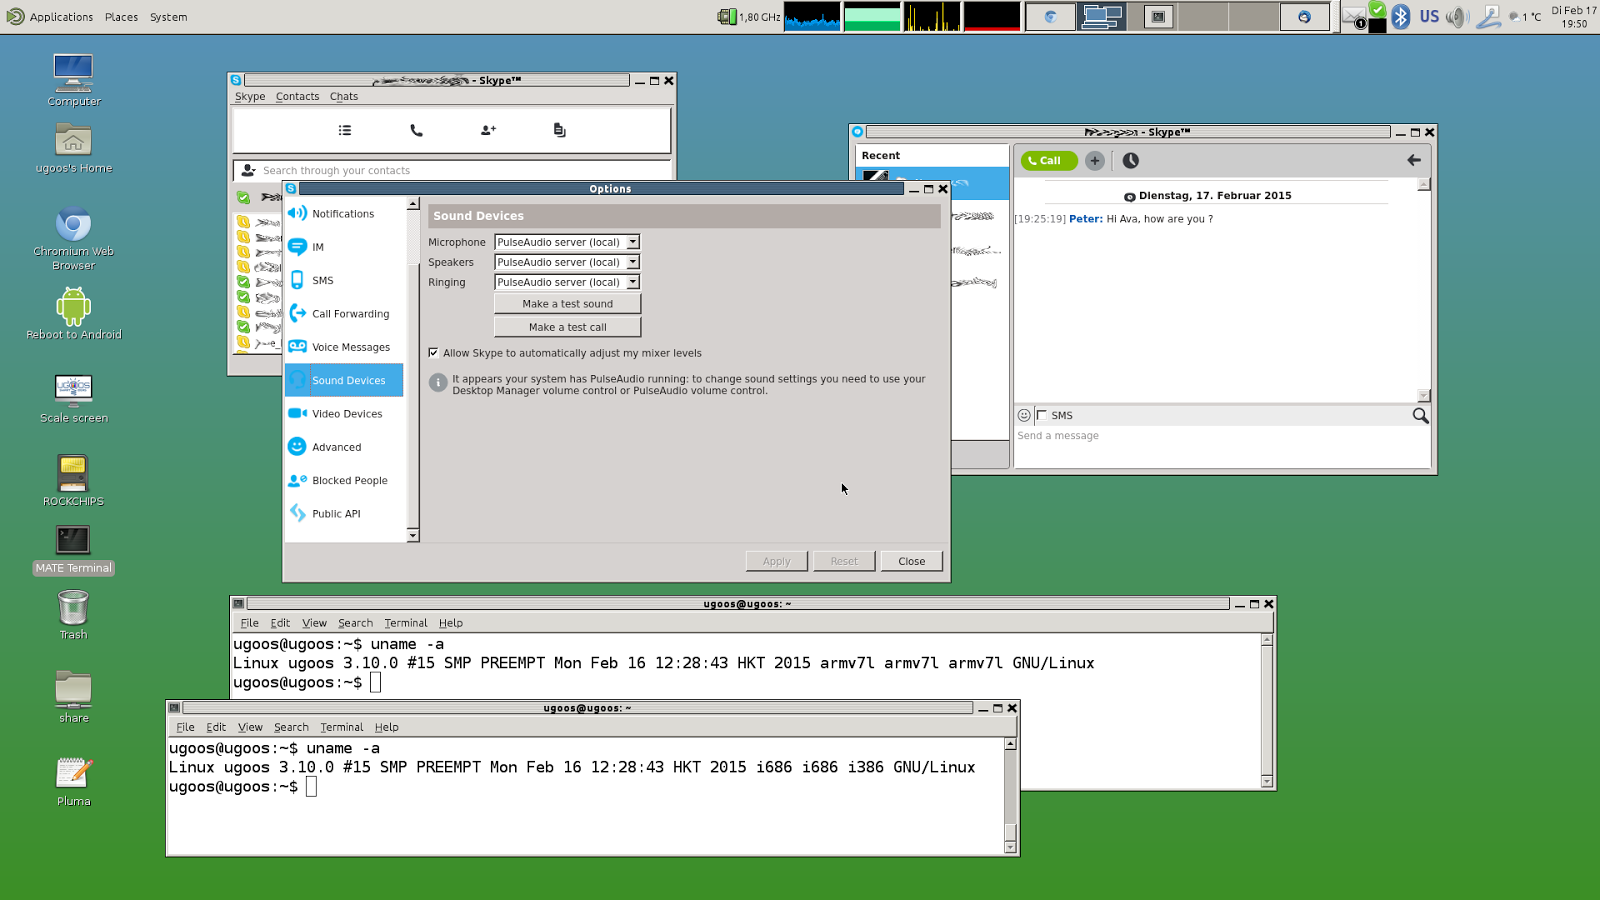 Firmware v 0 3 with Ubuntu 14 10 and Android now available